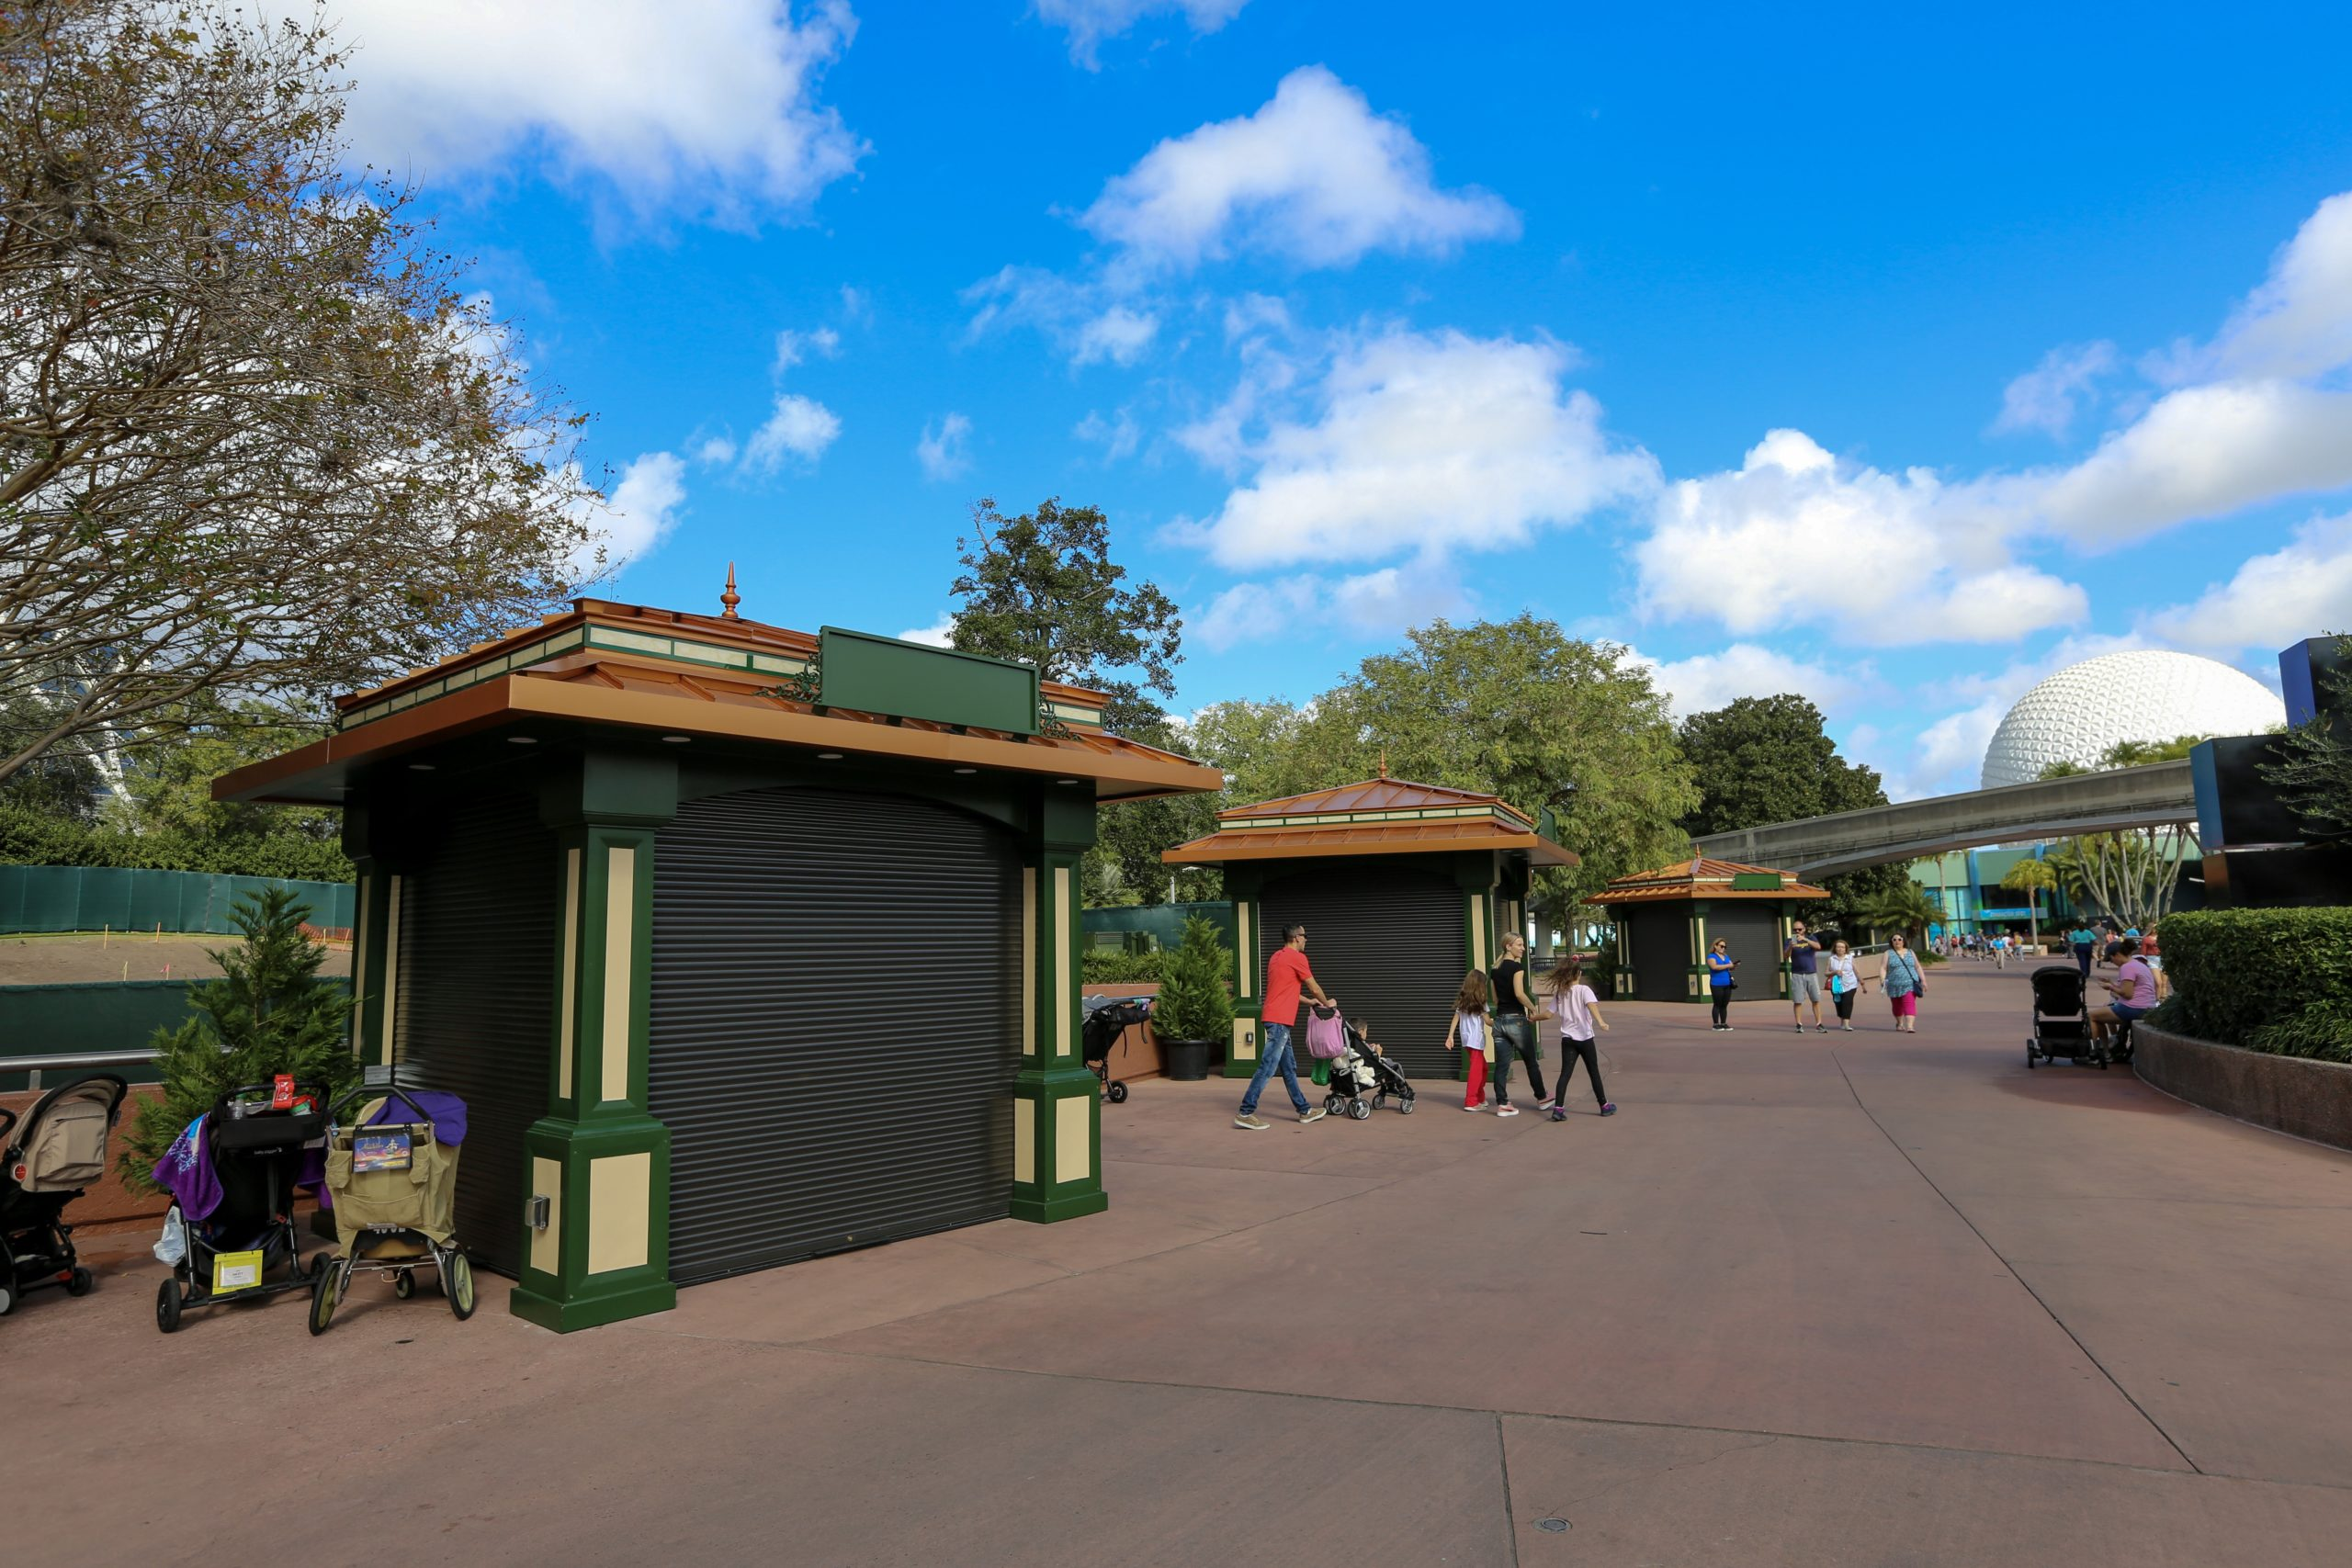 Epcot Festival Of The Arts Merchandise Booths Installed In New Location Near Imagination Pavilion